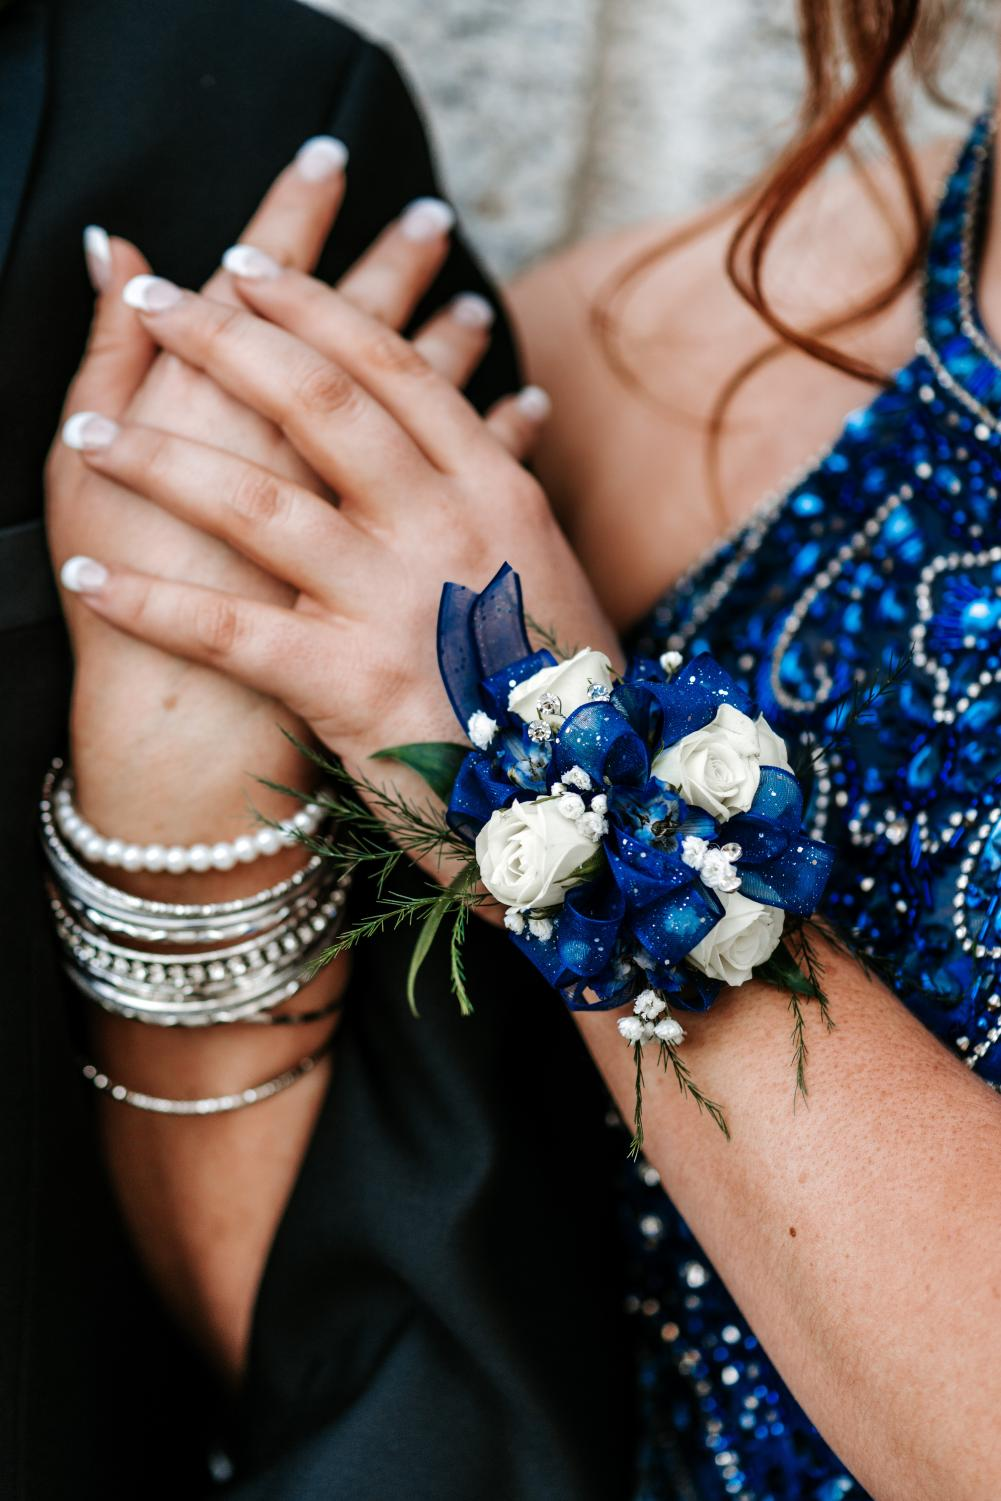 Corsages and Boutonnieres  come from a tradition when flowers were worn to make one smell nice while dancing with their partner. Today, they are used as accessories to go with the dress or tuxedo.